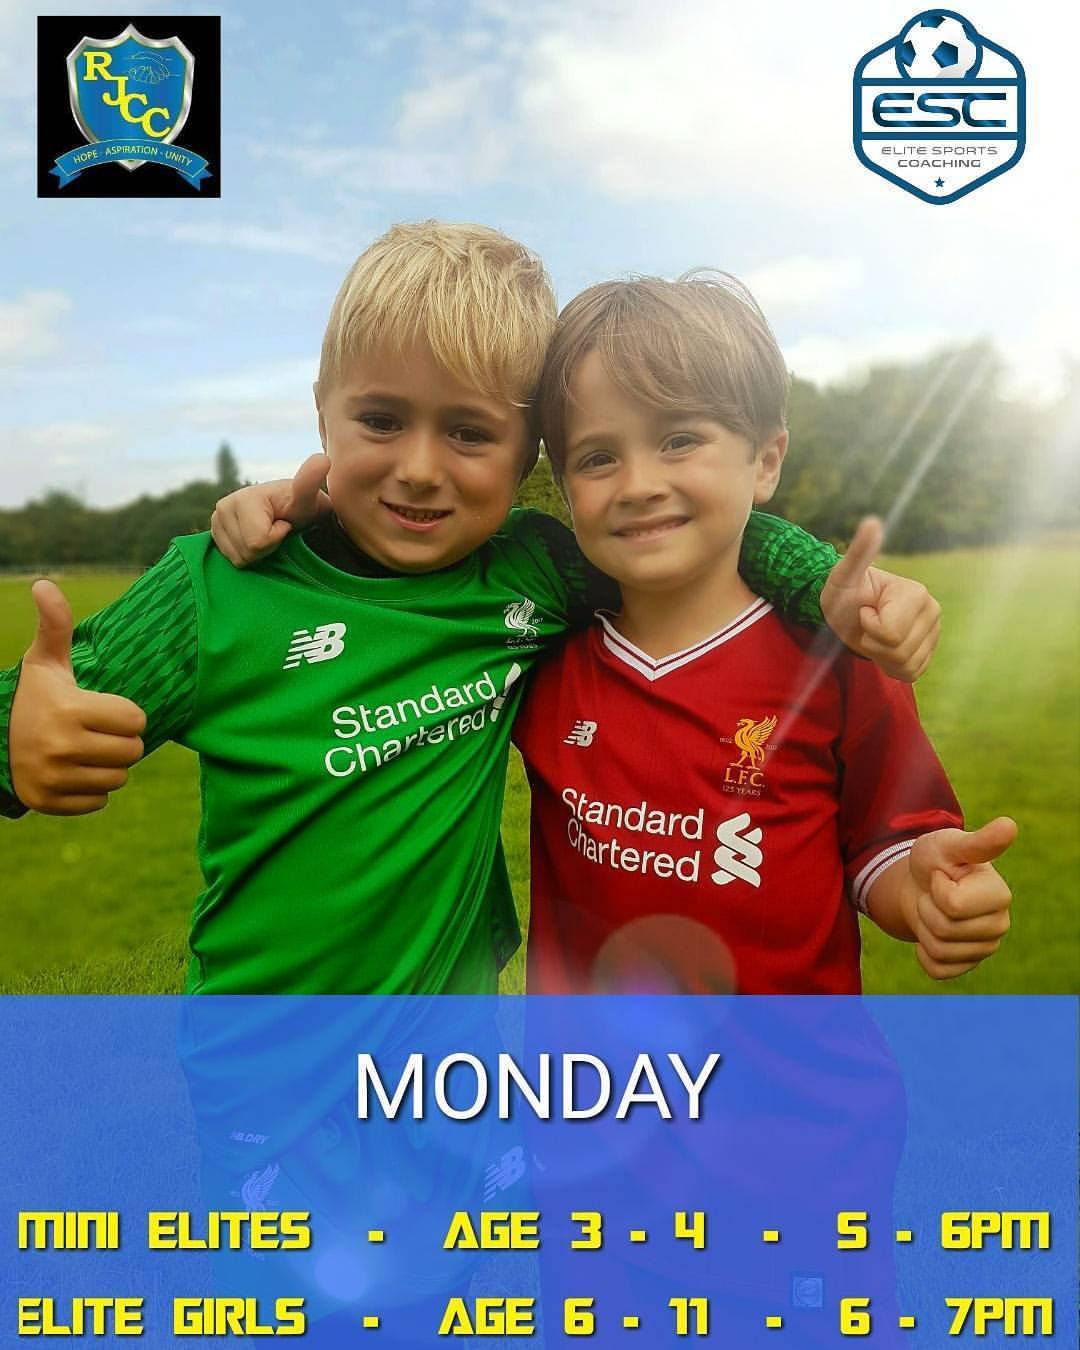 Mini Elites football at Rhys Jones Community Centre Liverpool